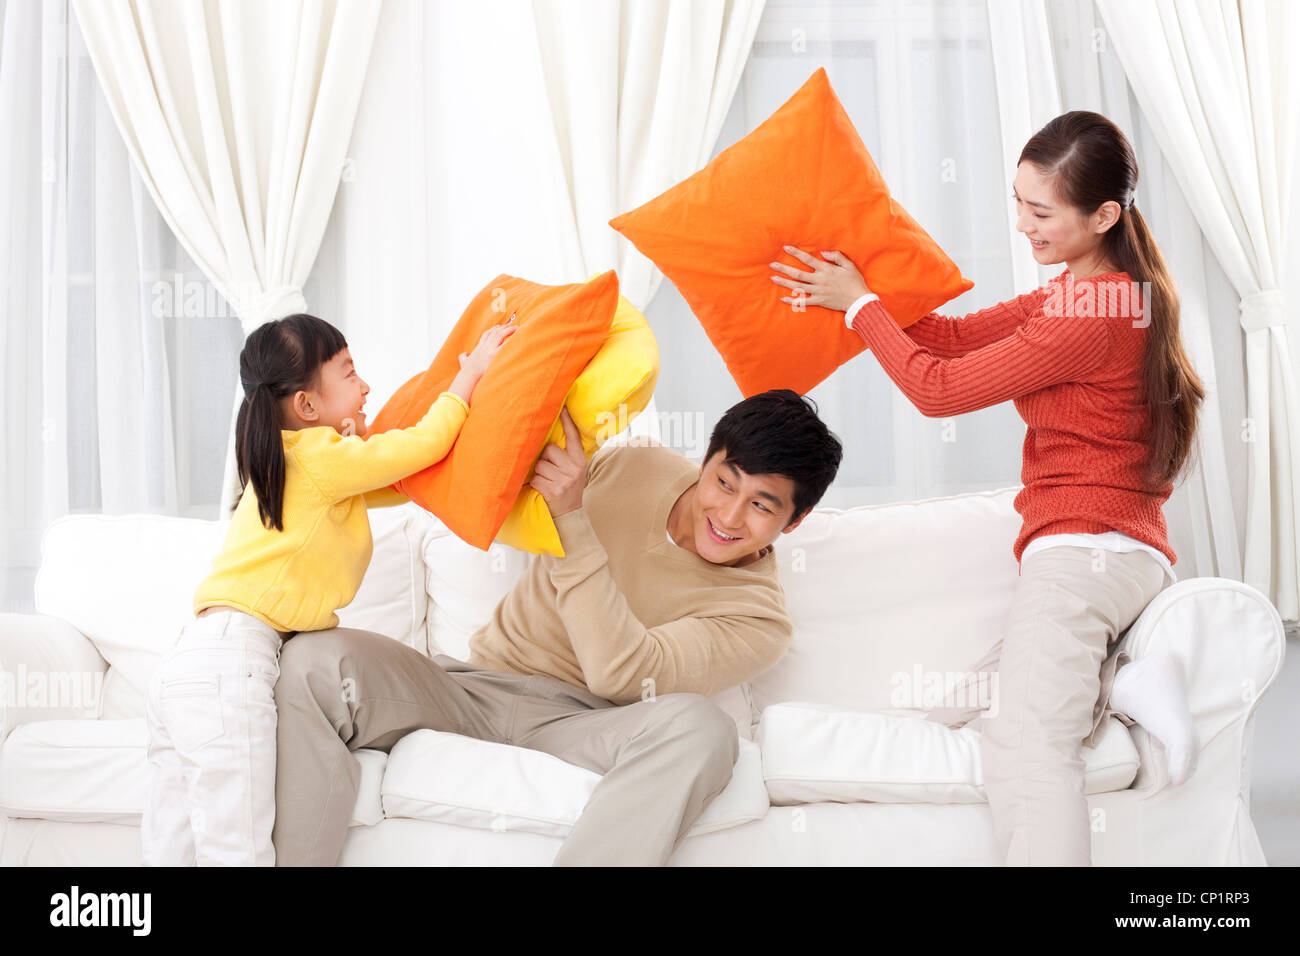 Family doing pillow fighting - Stock Image